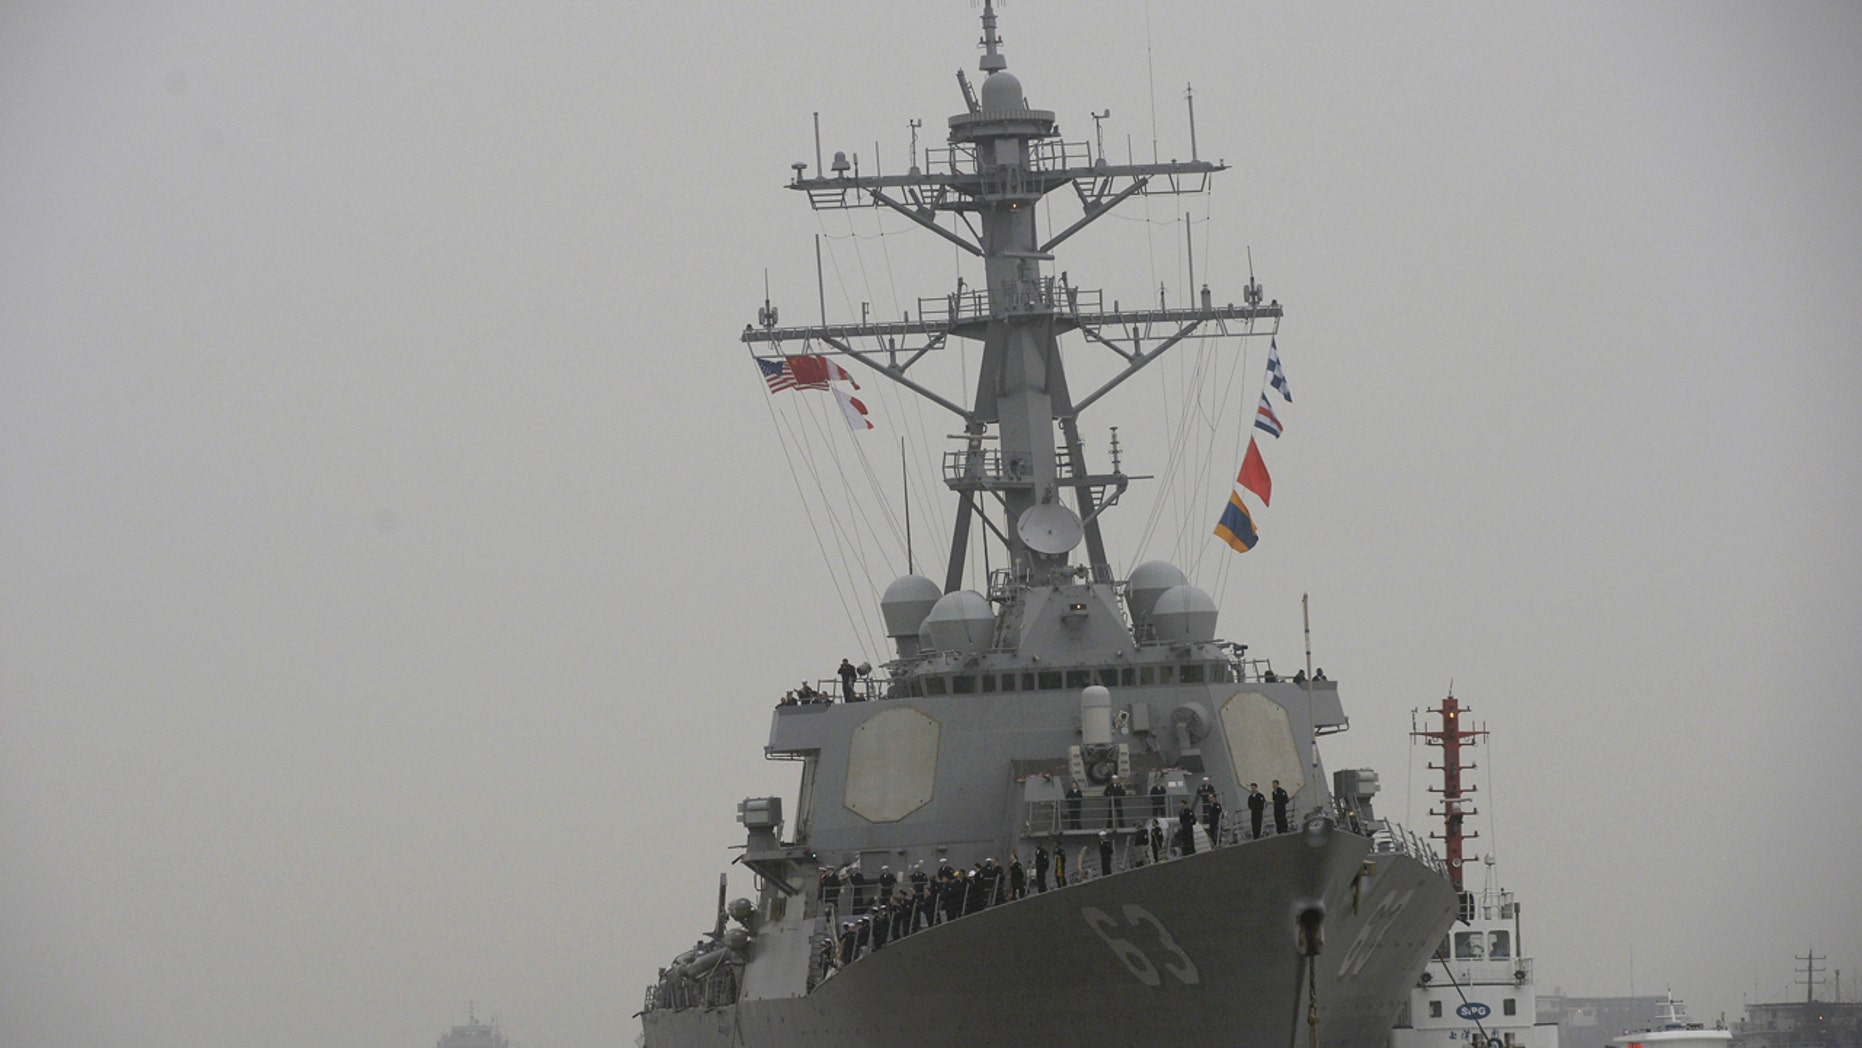 The destroyer USS Stethem arrives for an official visit to Shanghai, China on Nov. 16, 2015.